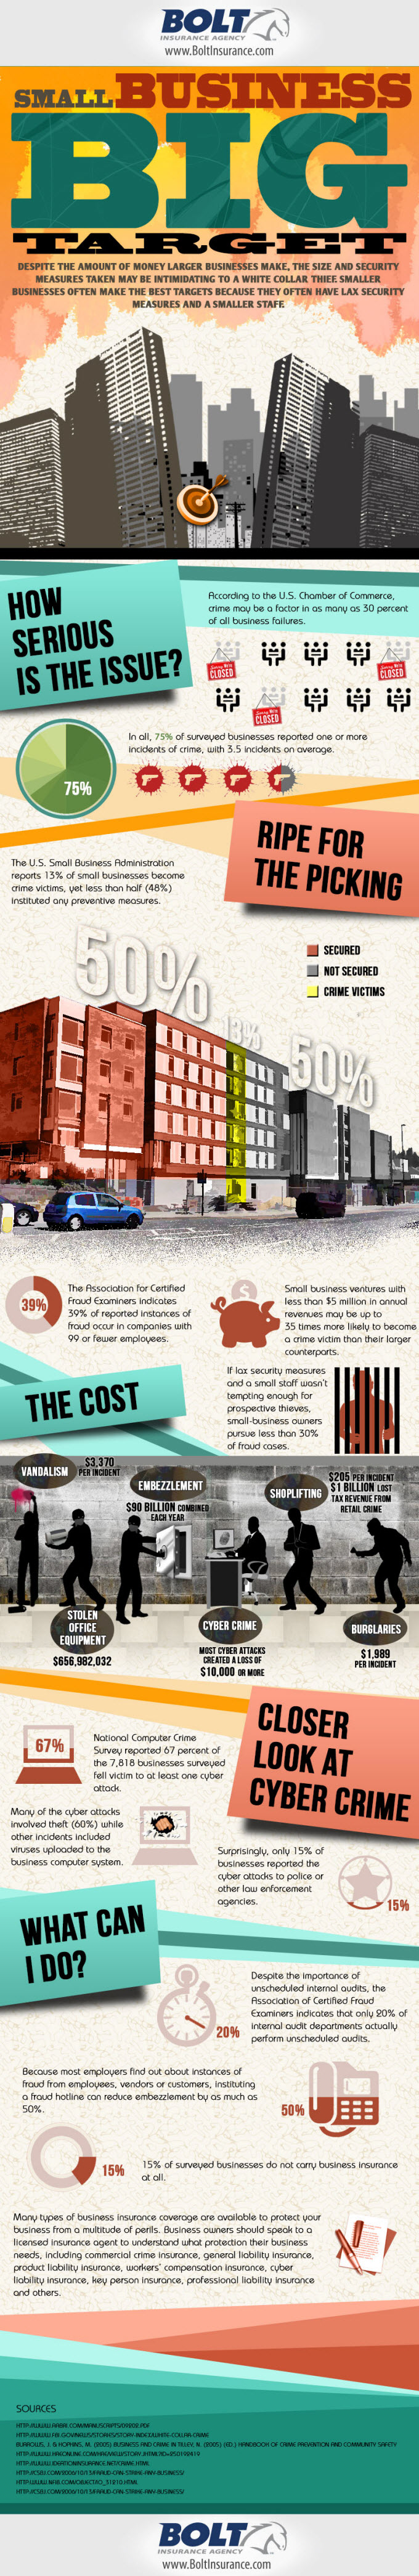 Interesting Facts About Small Business Crime in the US